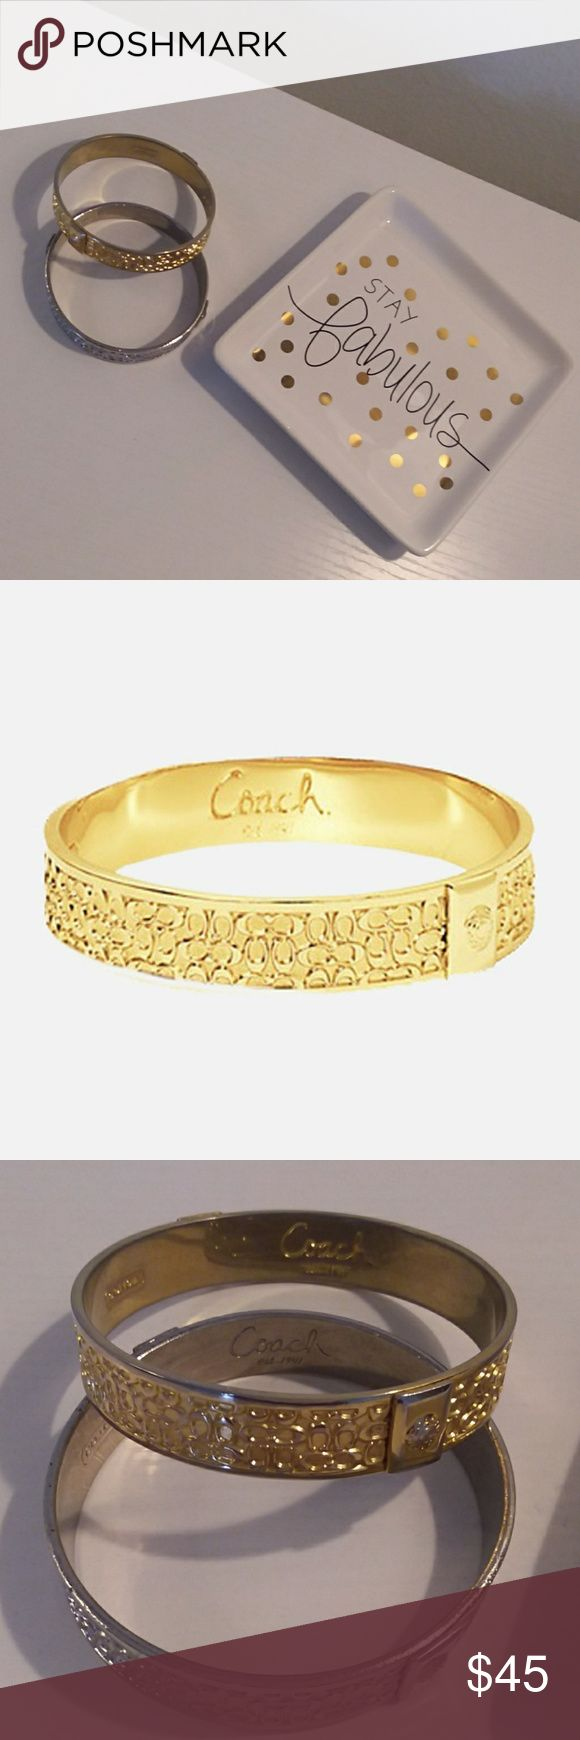 Coach Bracelets Silver and Gold bracelet set the words coach are located on the inside of the bracelets Coach Jewelry Bracelets